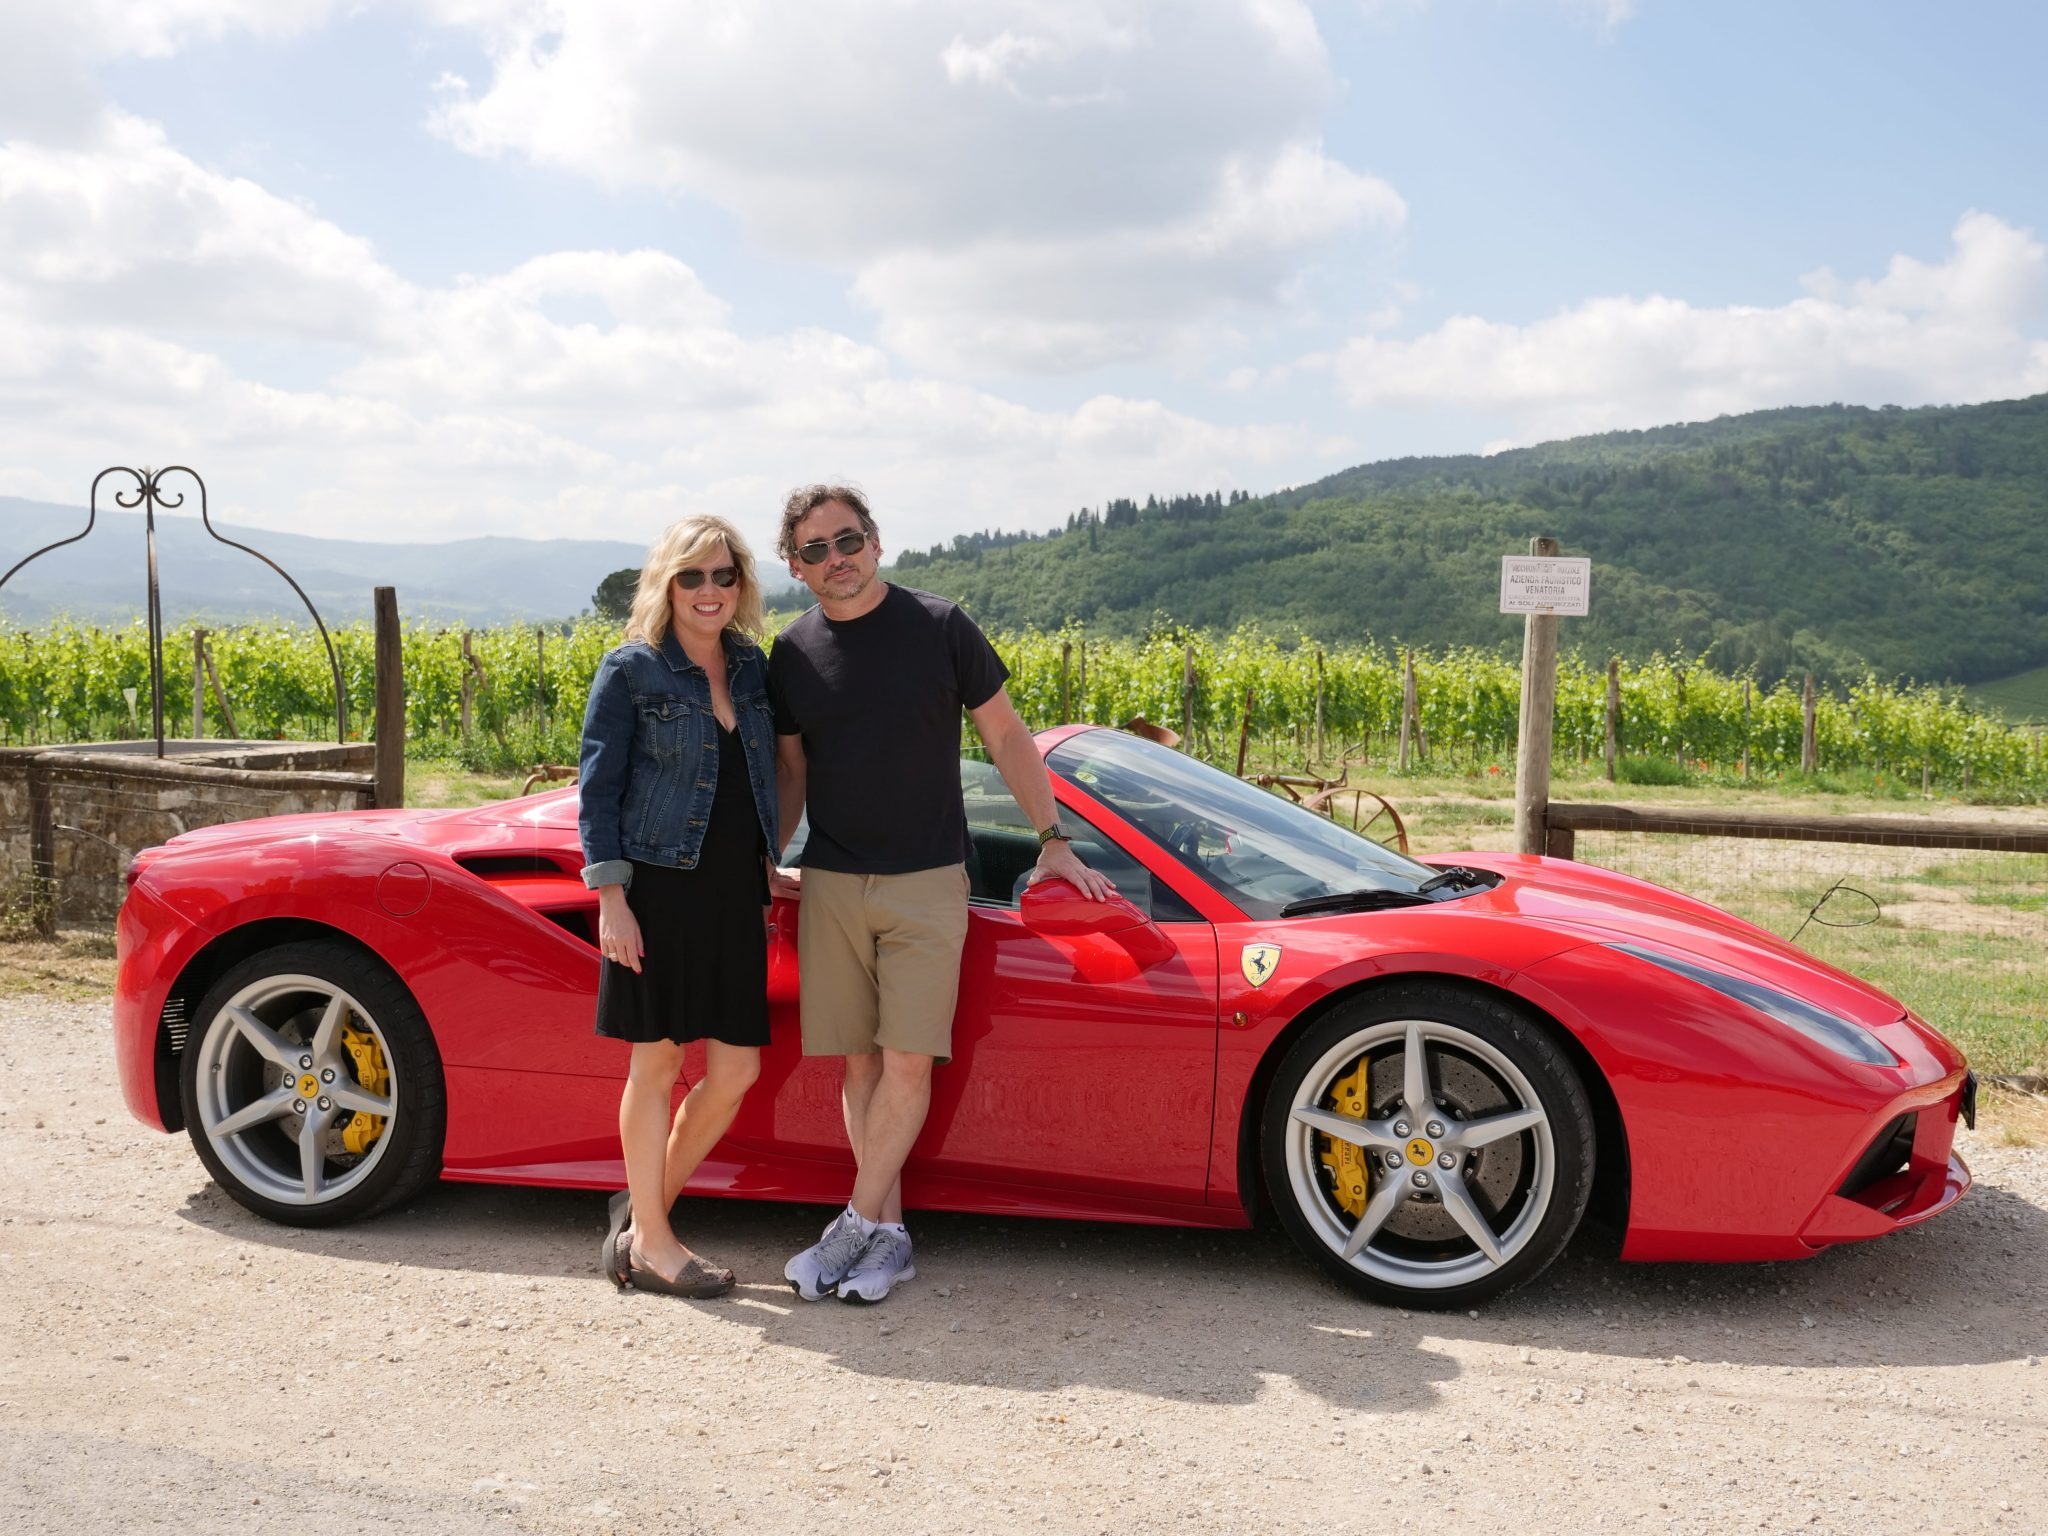 Ferrari tours in Tuscany: a customer feedback -